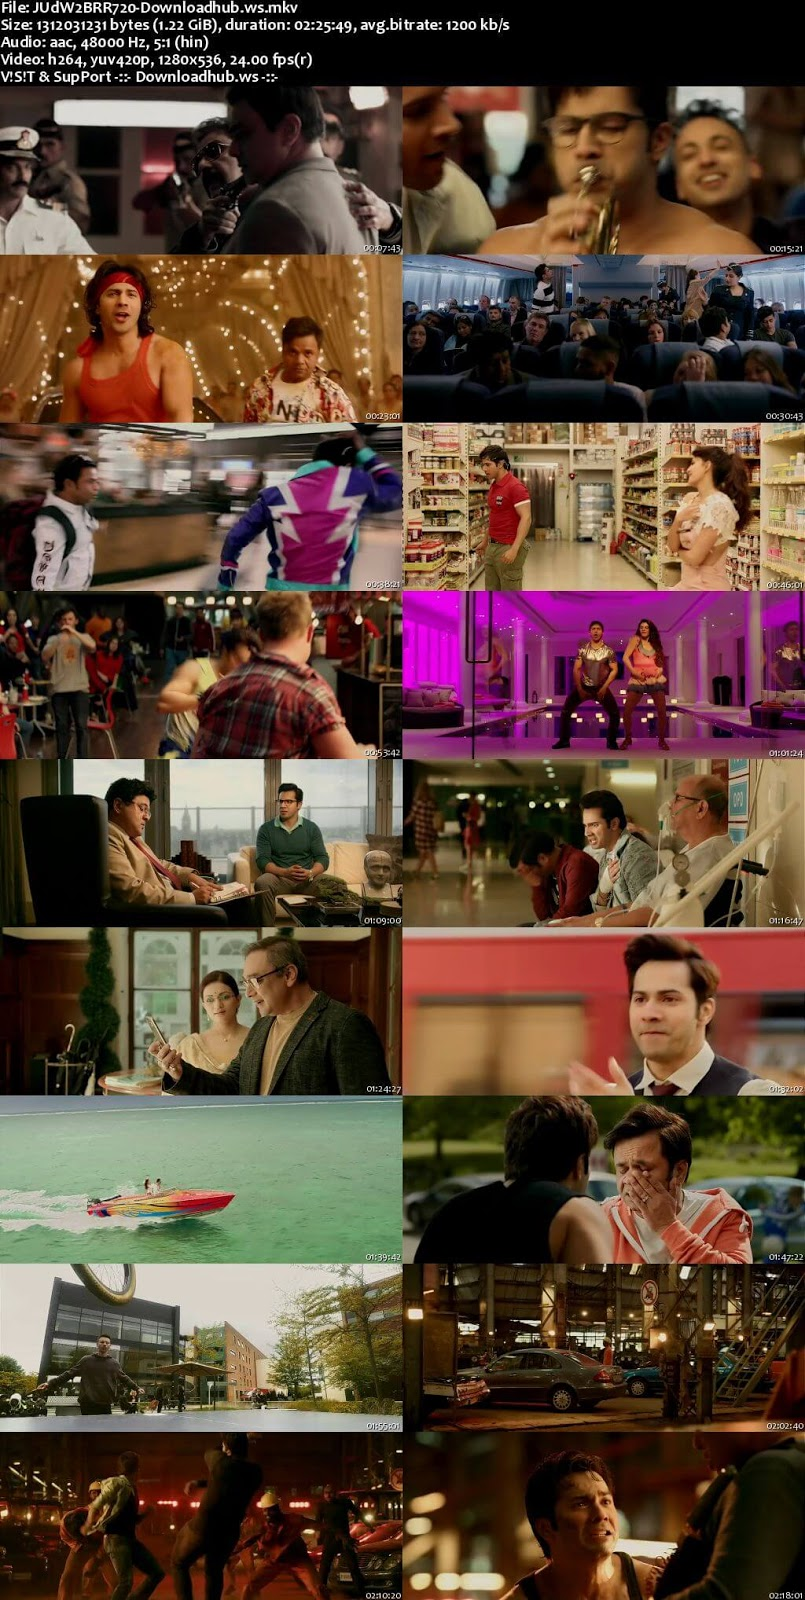 Judwaa 2 2017 Hindi 720p BluRay ESubs